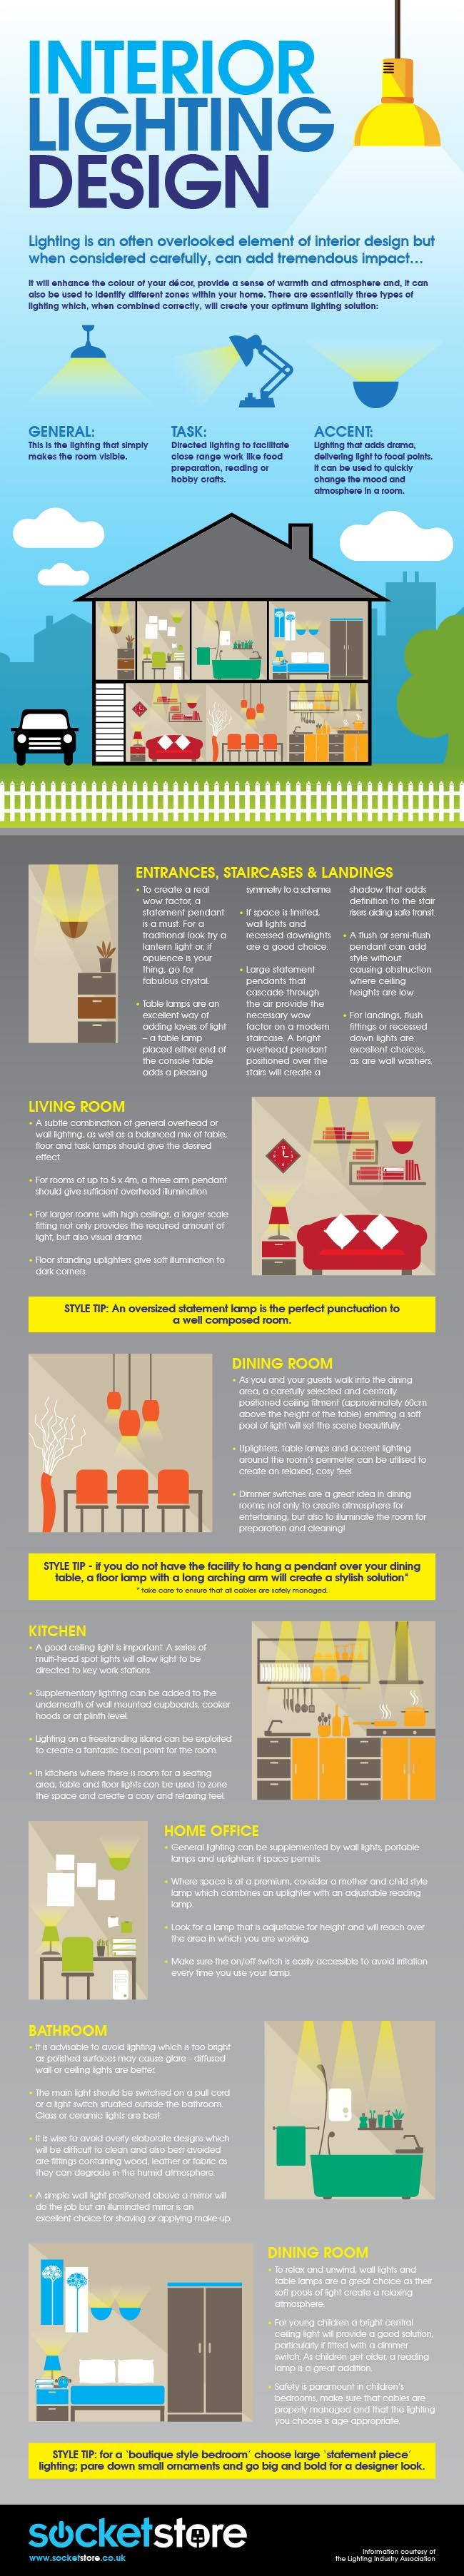 Infographic Interior Lighting Design | Infographics ...